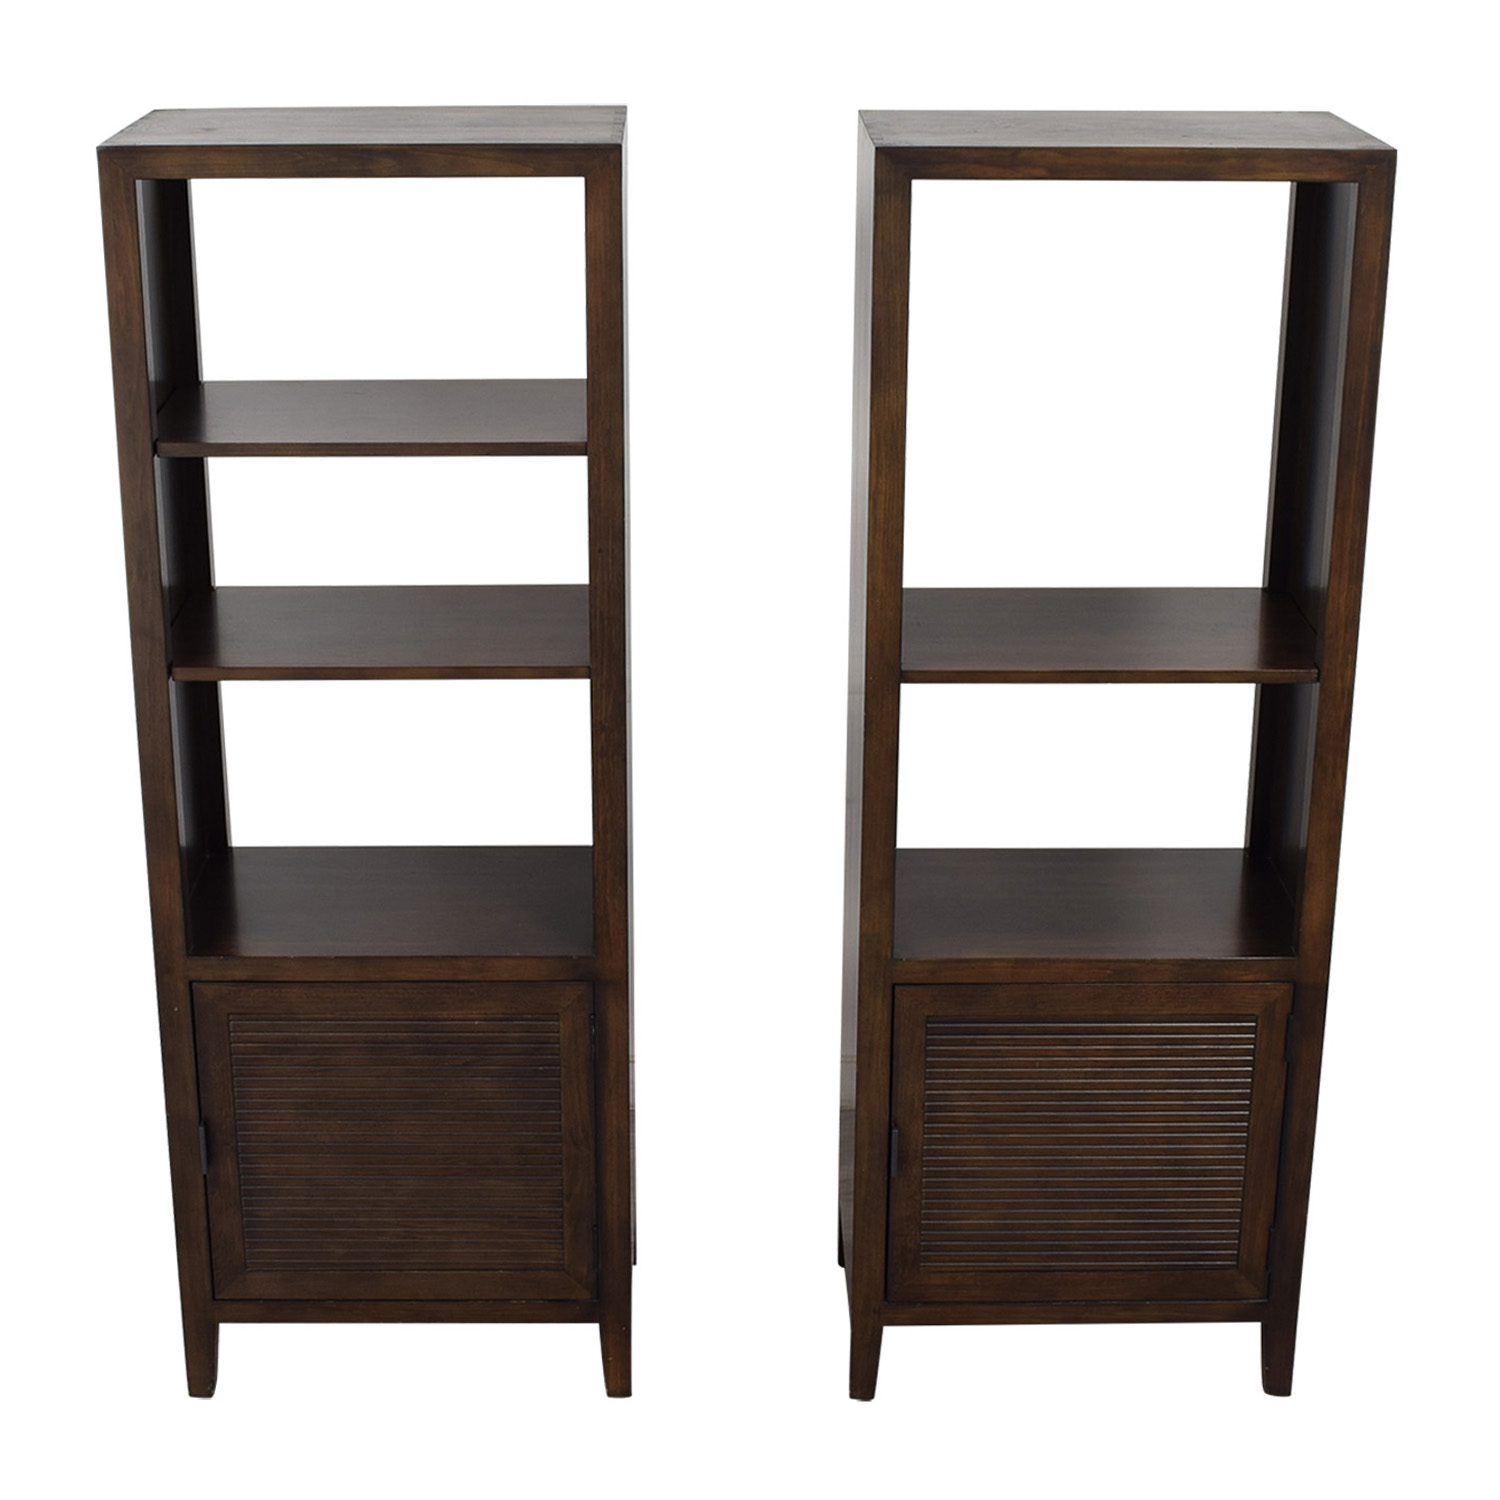 Crate & Barrel Crate & Barrel Bookshelves Storage